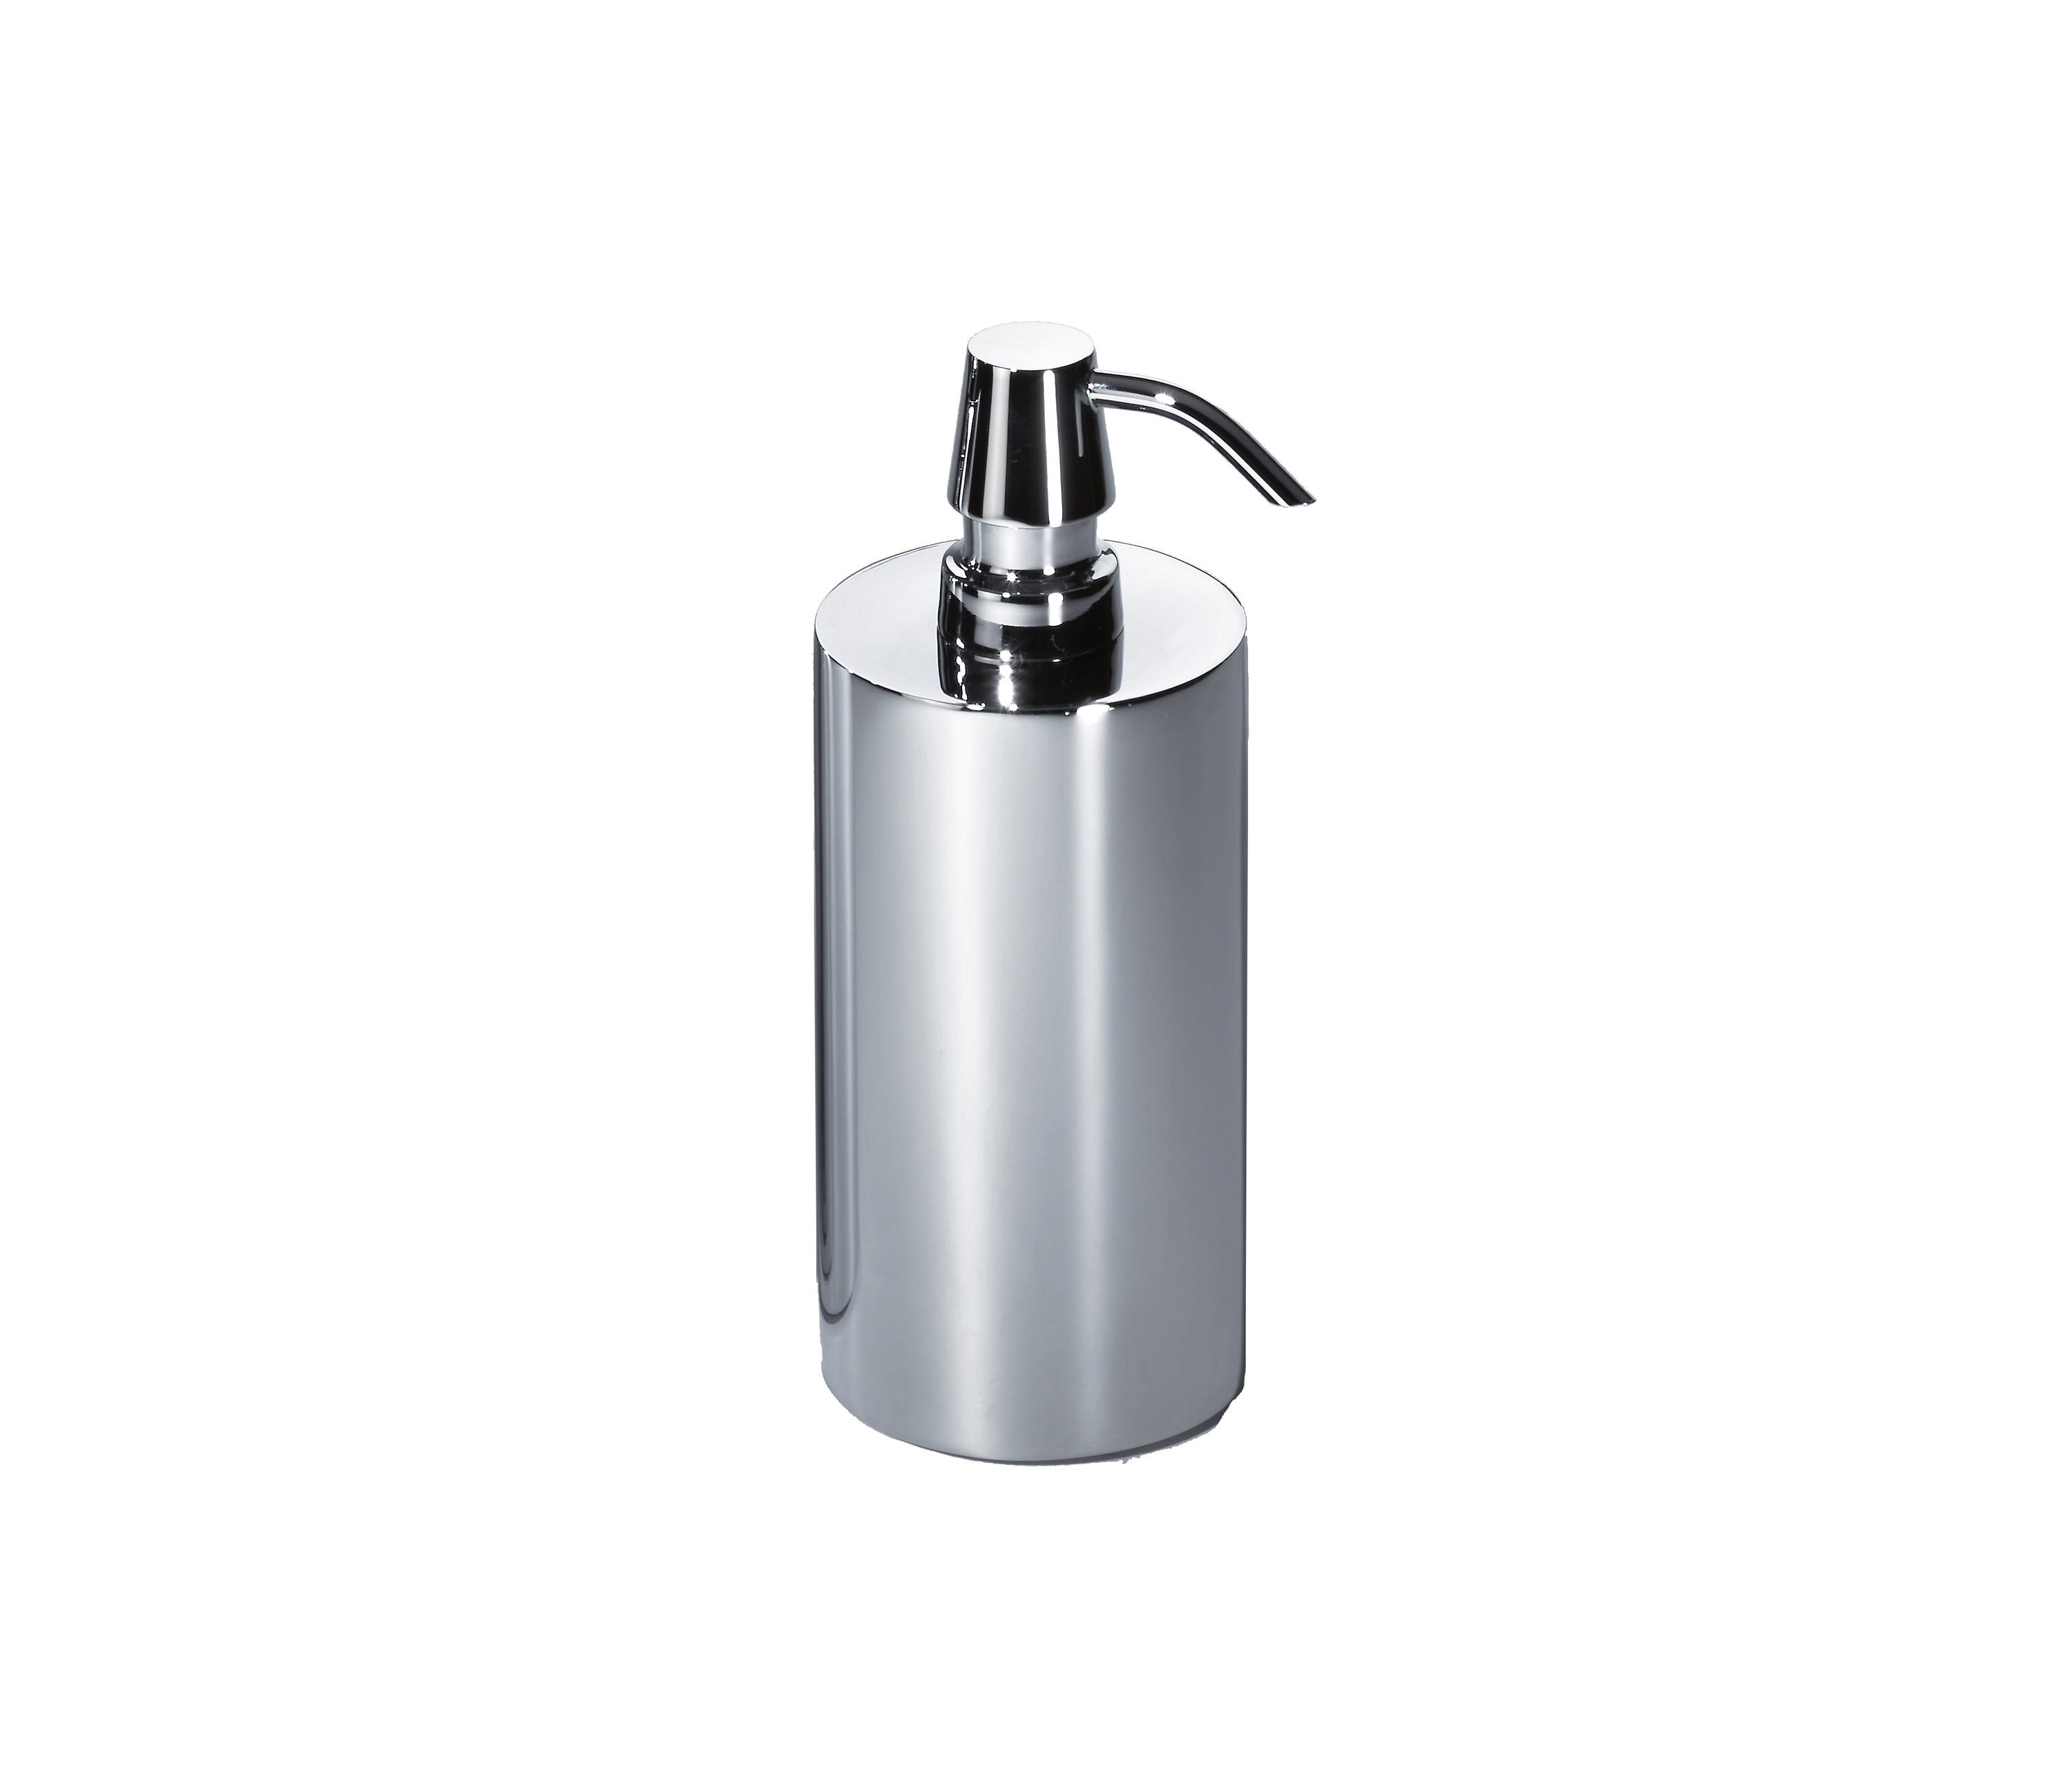 Decor Walther Dw 440 Soap Dispensers From Decor Walther Architonic